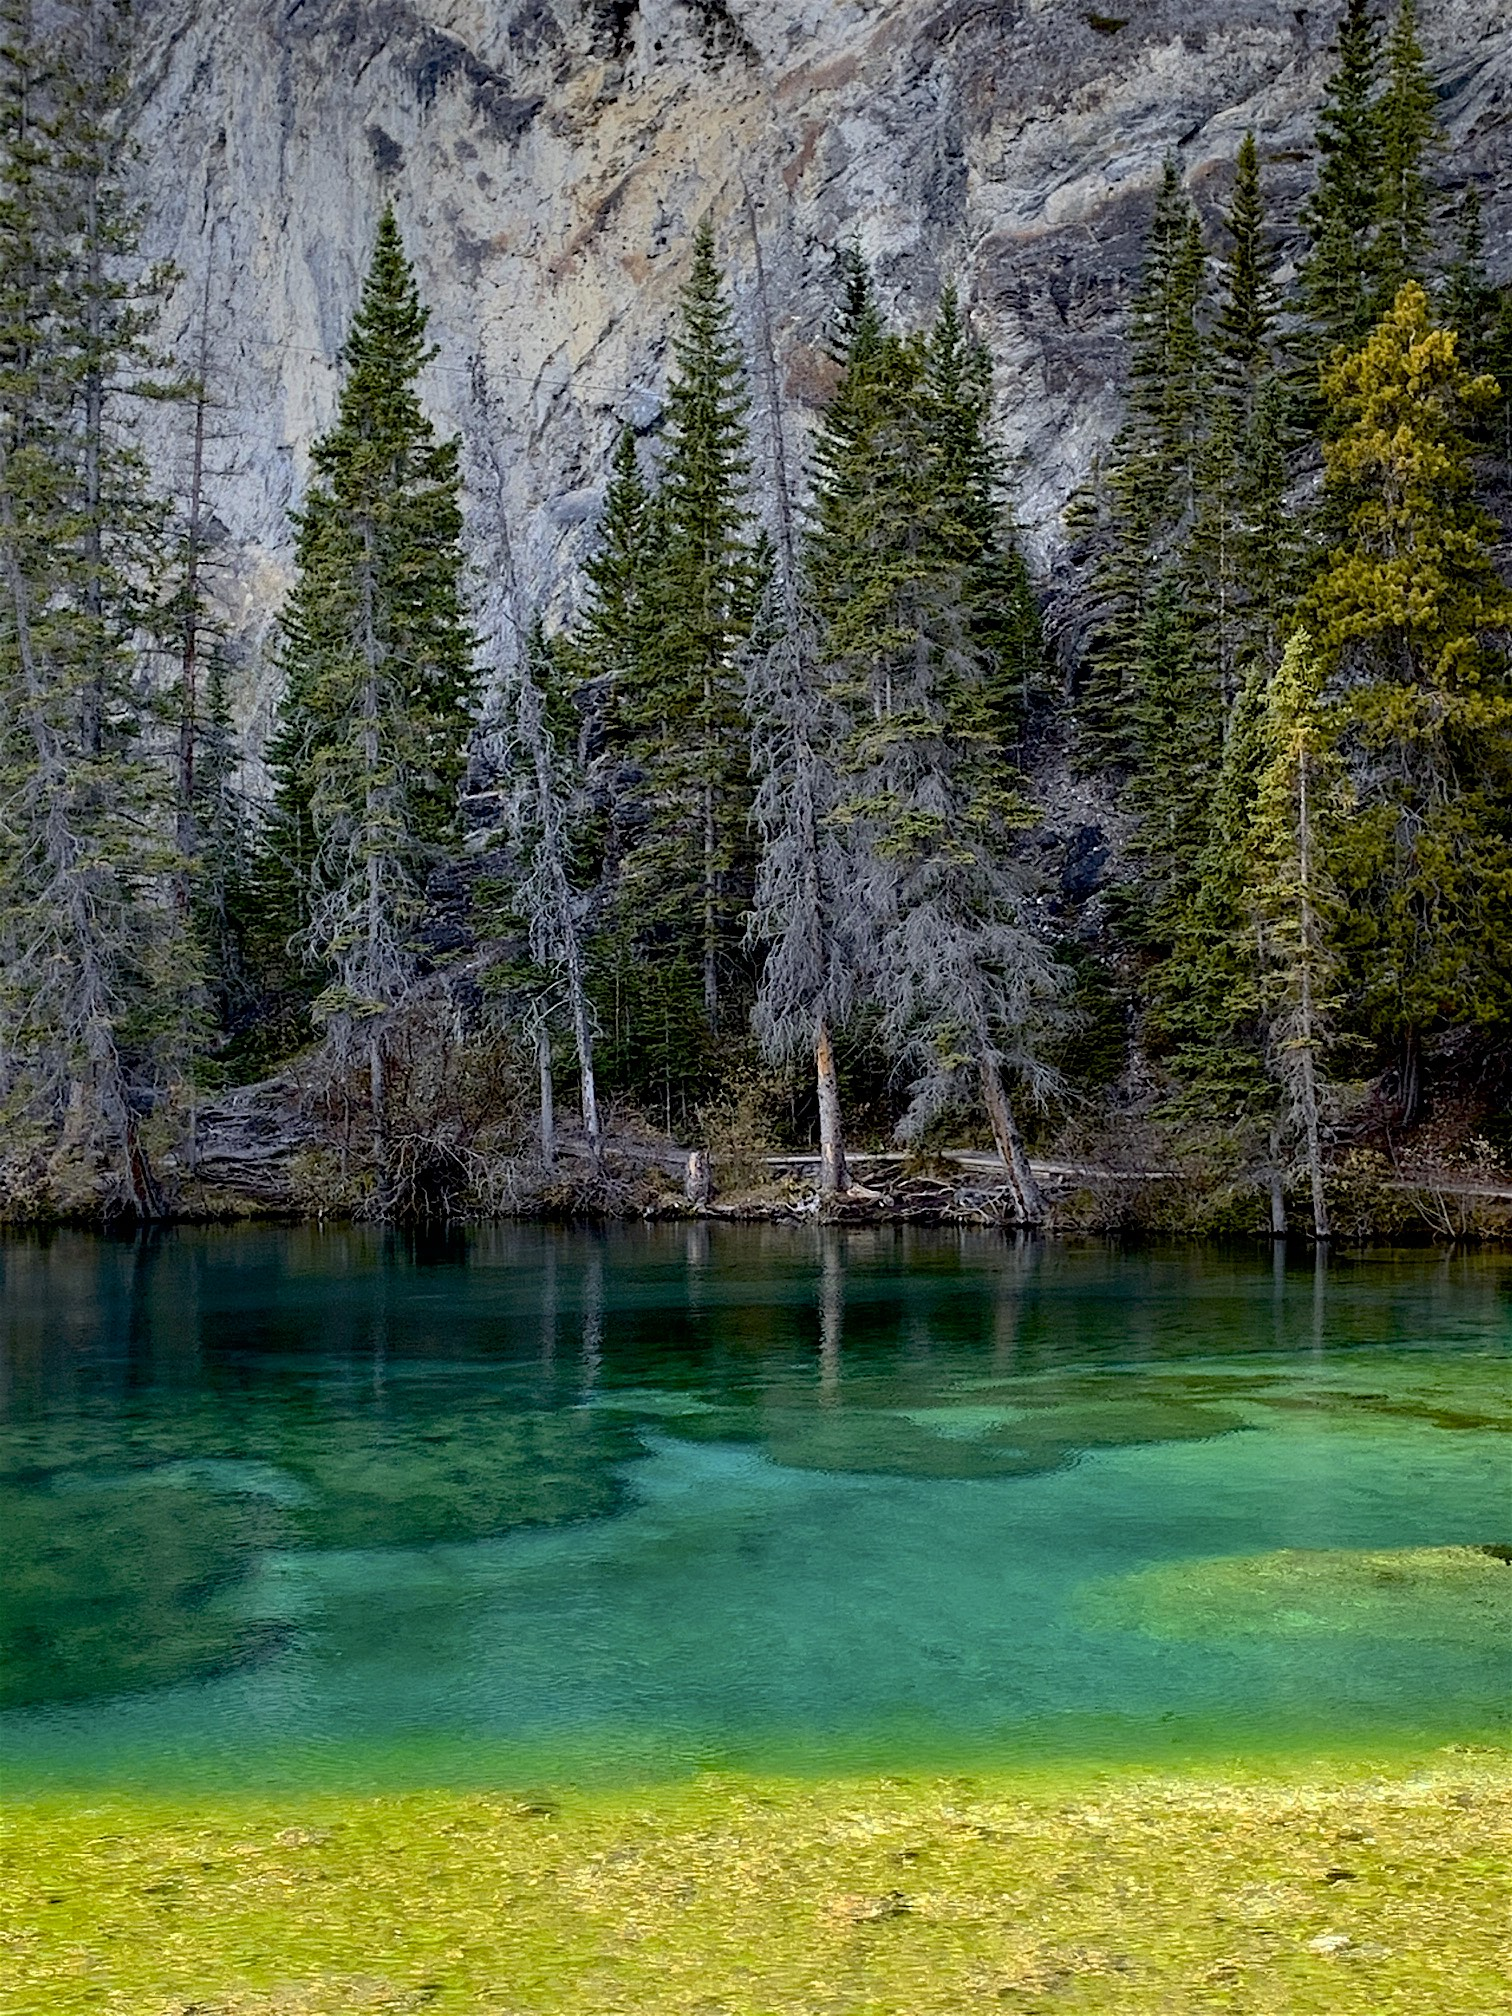 The beautiful Grassi Lakes in Canmore